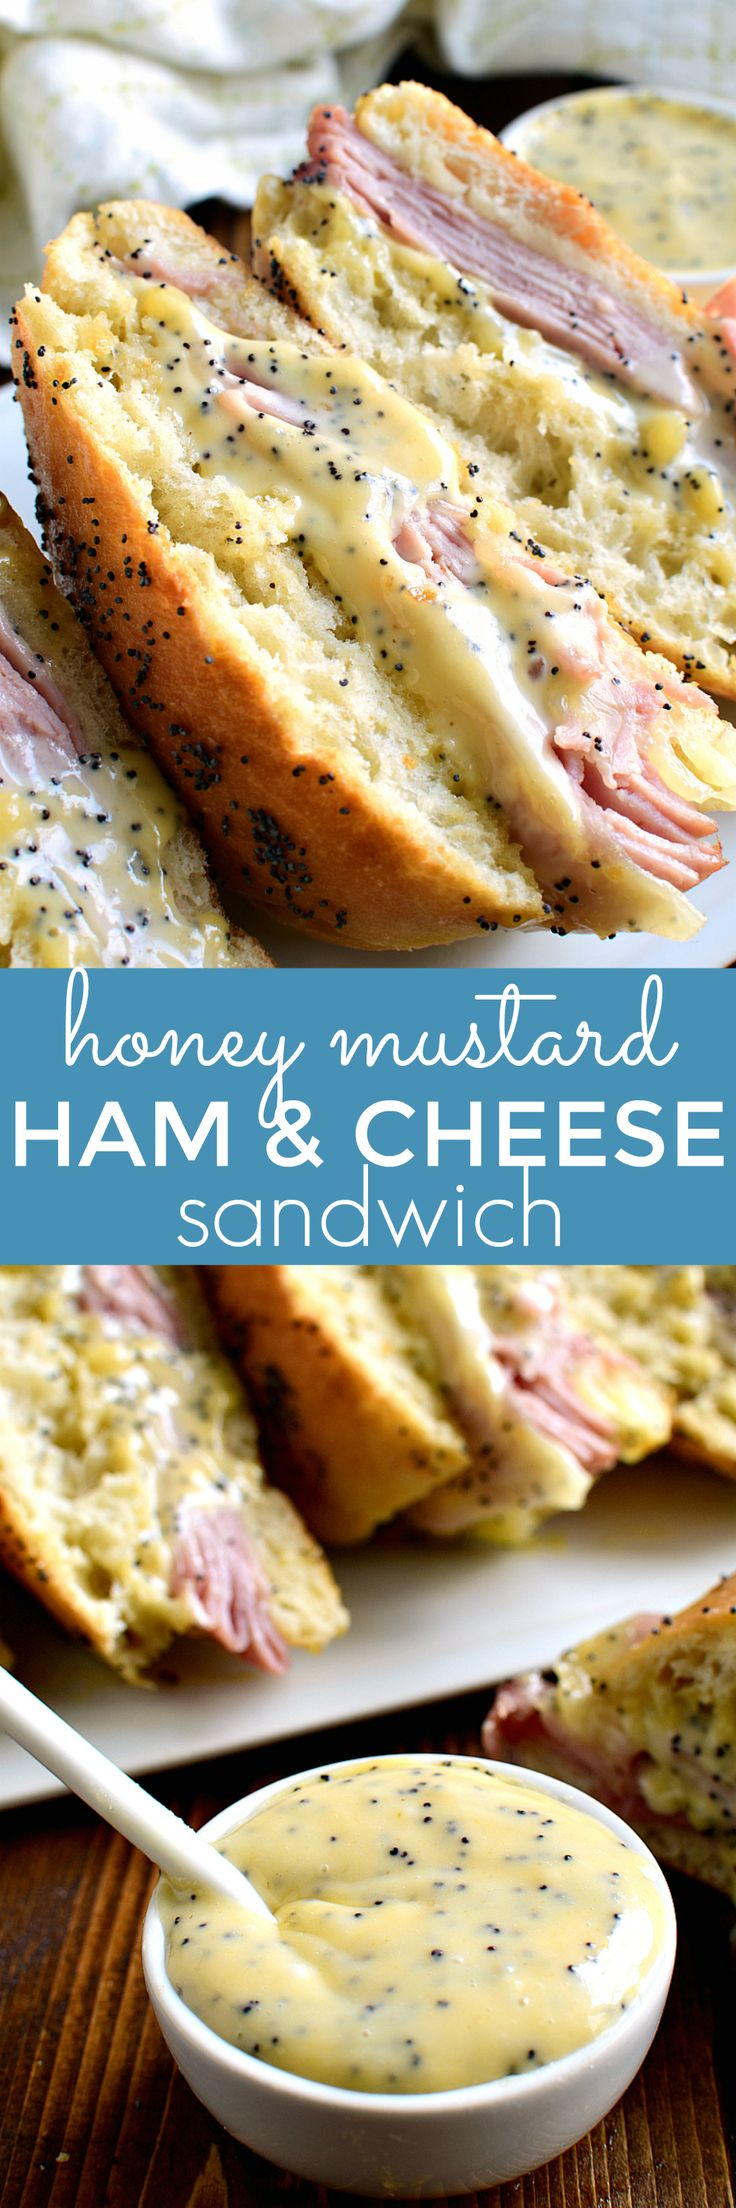 If you love honey mustard, this Honey Mustard Ham & Cheese Sandwich is for you! Perfect for lunch or dinner....a delicious twist on a classic! Also check out my website www.dailysurprises.co.uk